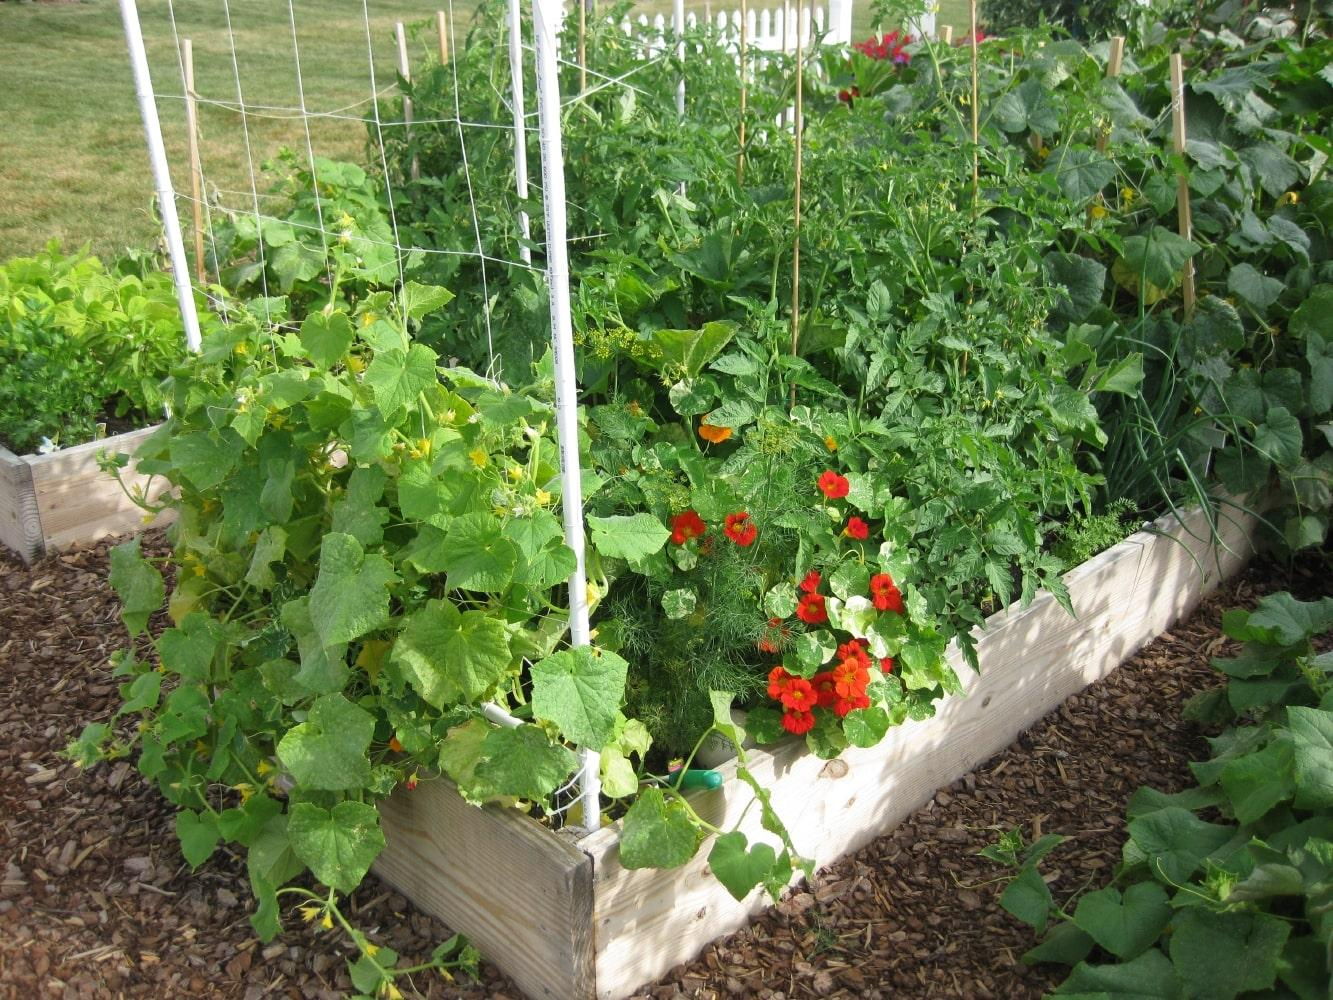 A wooden raised bed garden with trellis supports grows a variety of bountiful green plants.